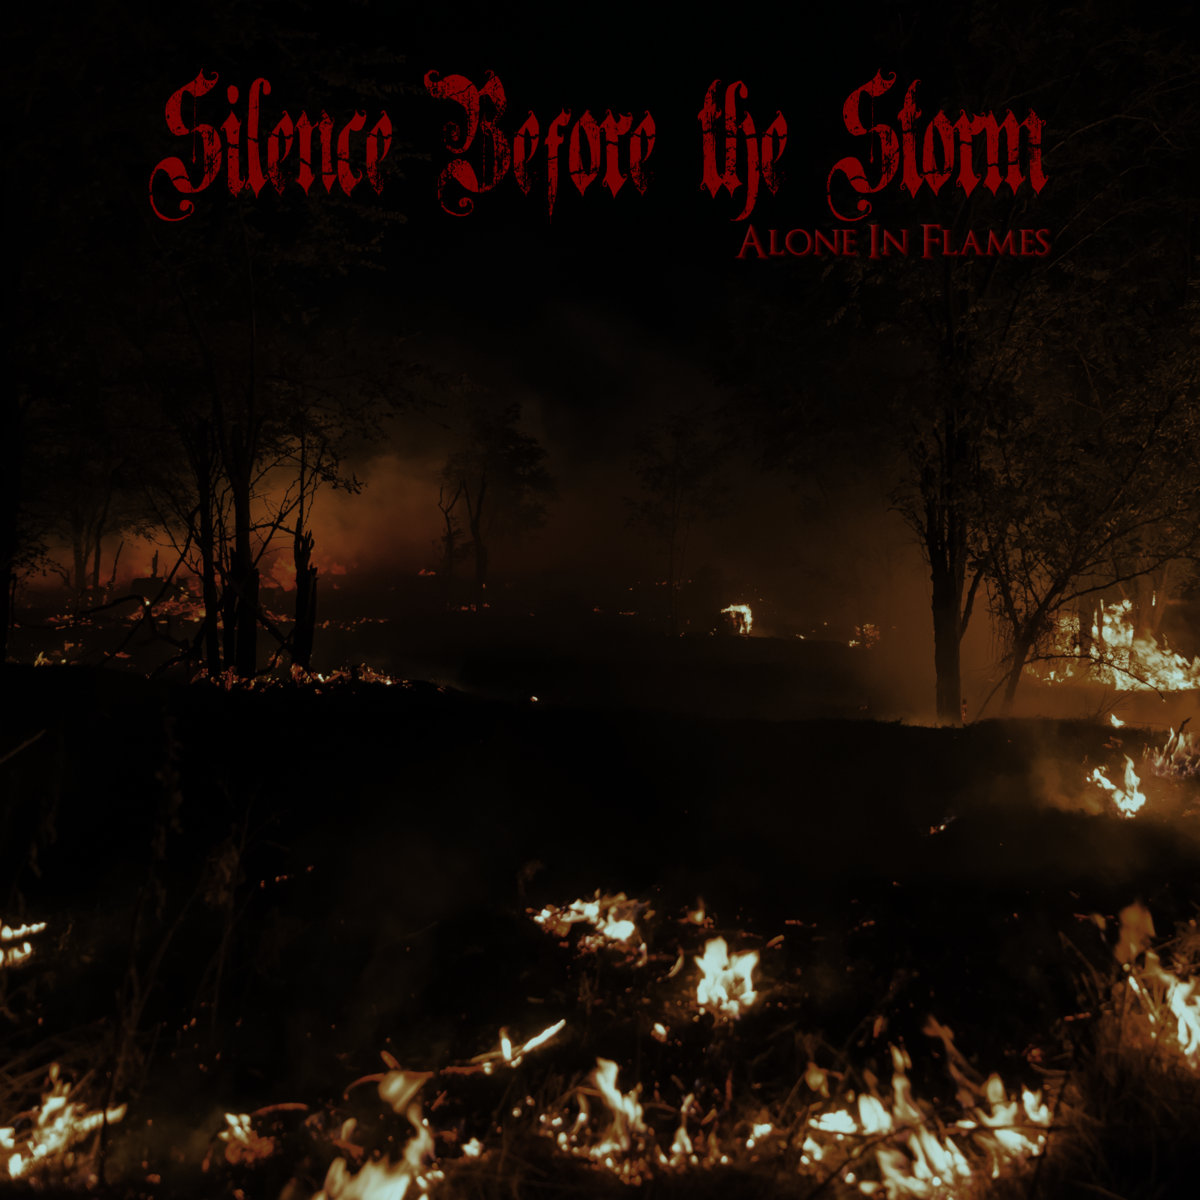 Silence Before the Storm - Alone in Flames (2020)